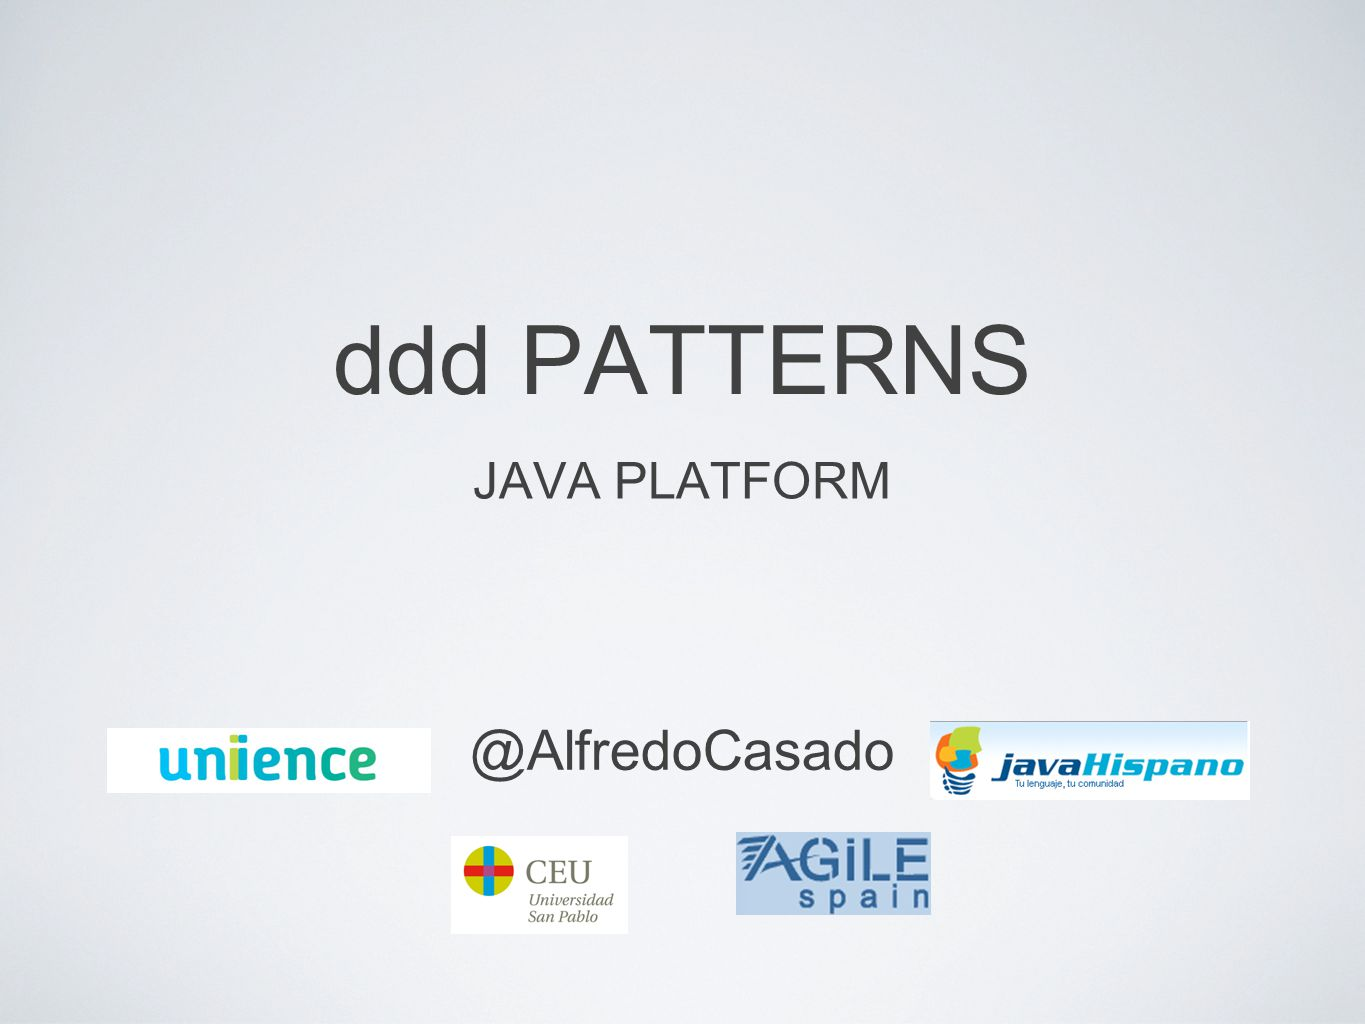 ddd PATTERNS JAVA PLATFORM @AlfredoCasado